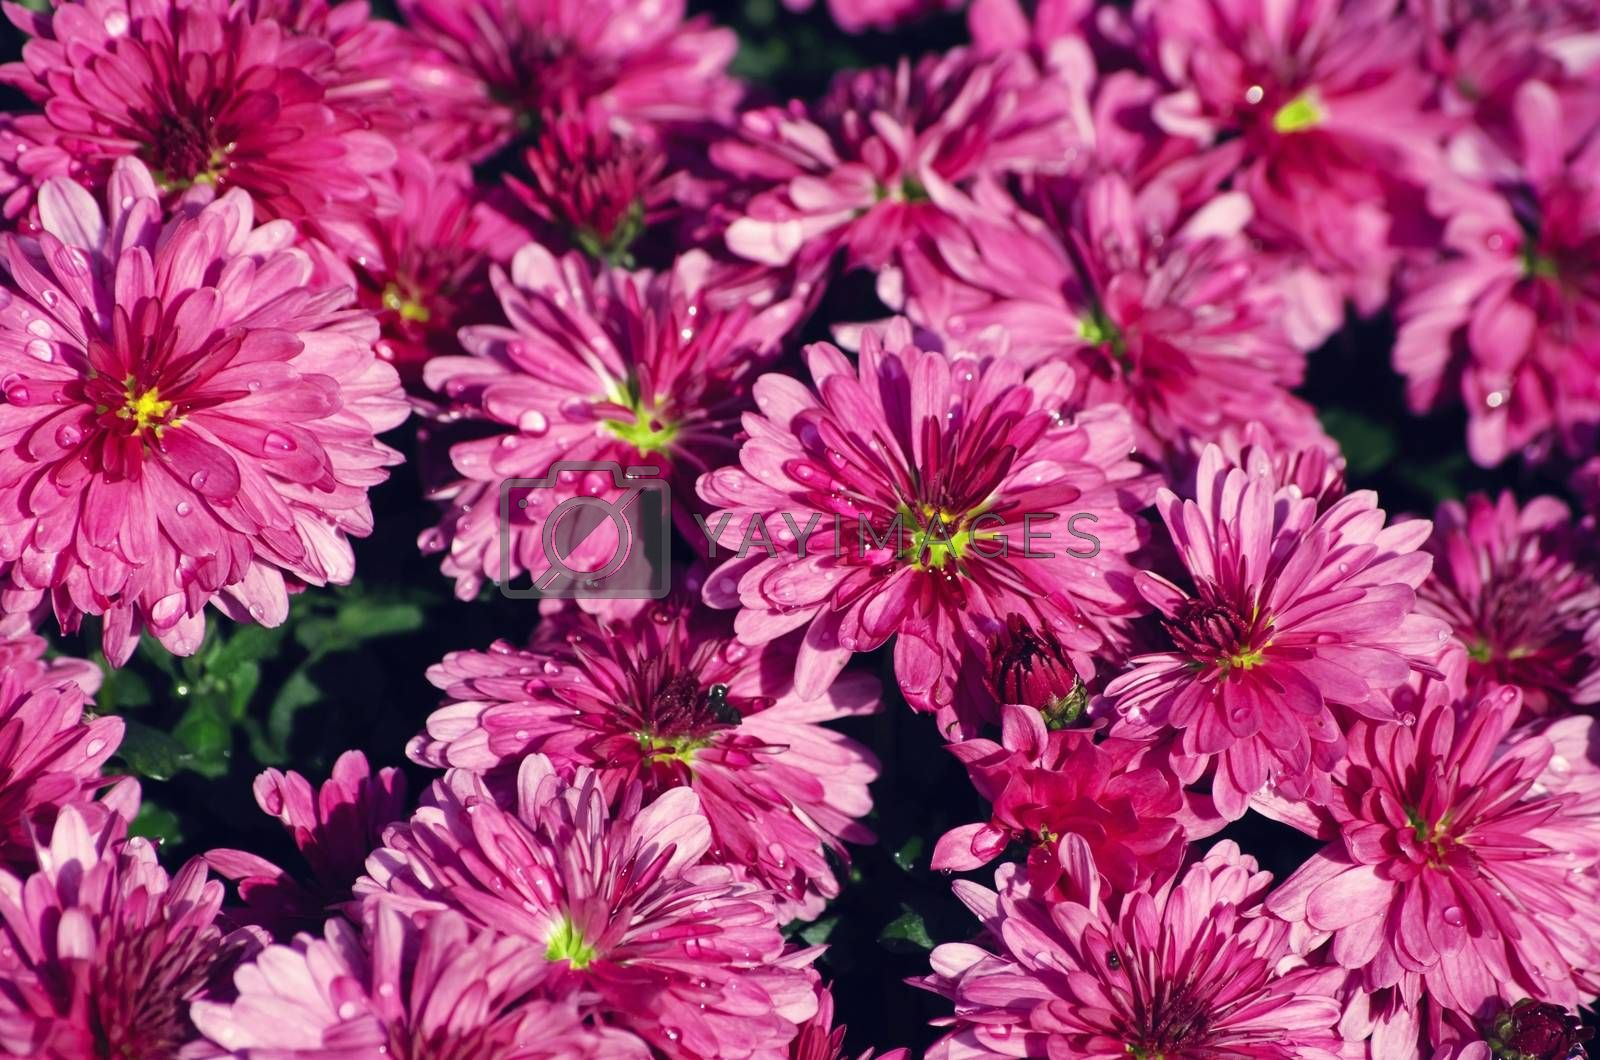 Photo of the Chrysanthemum Flower Background